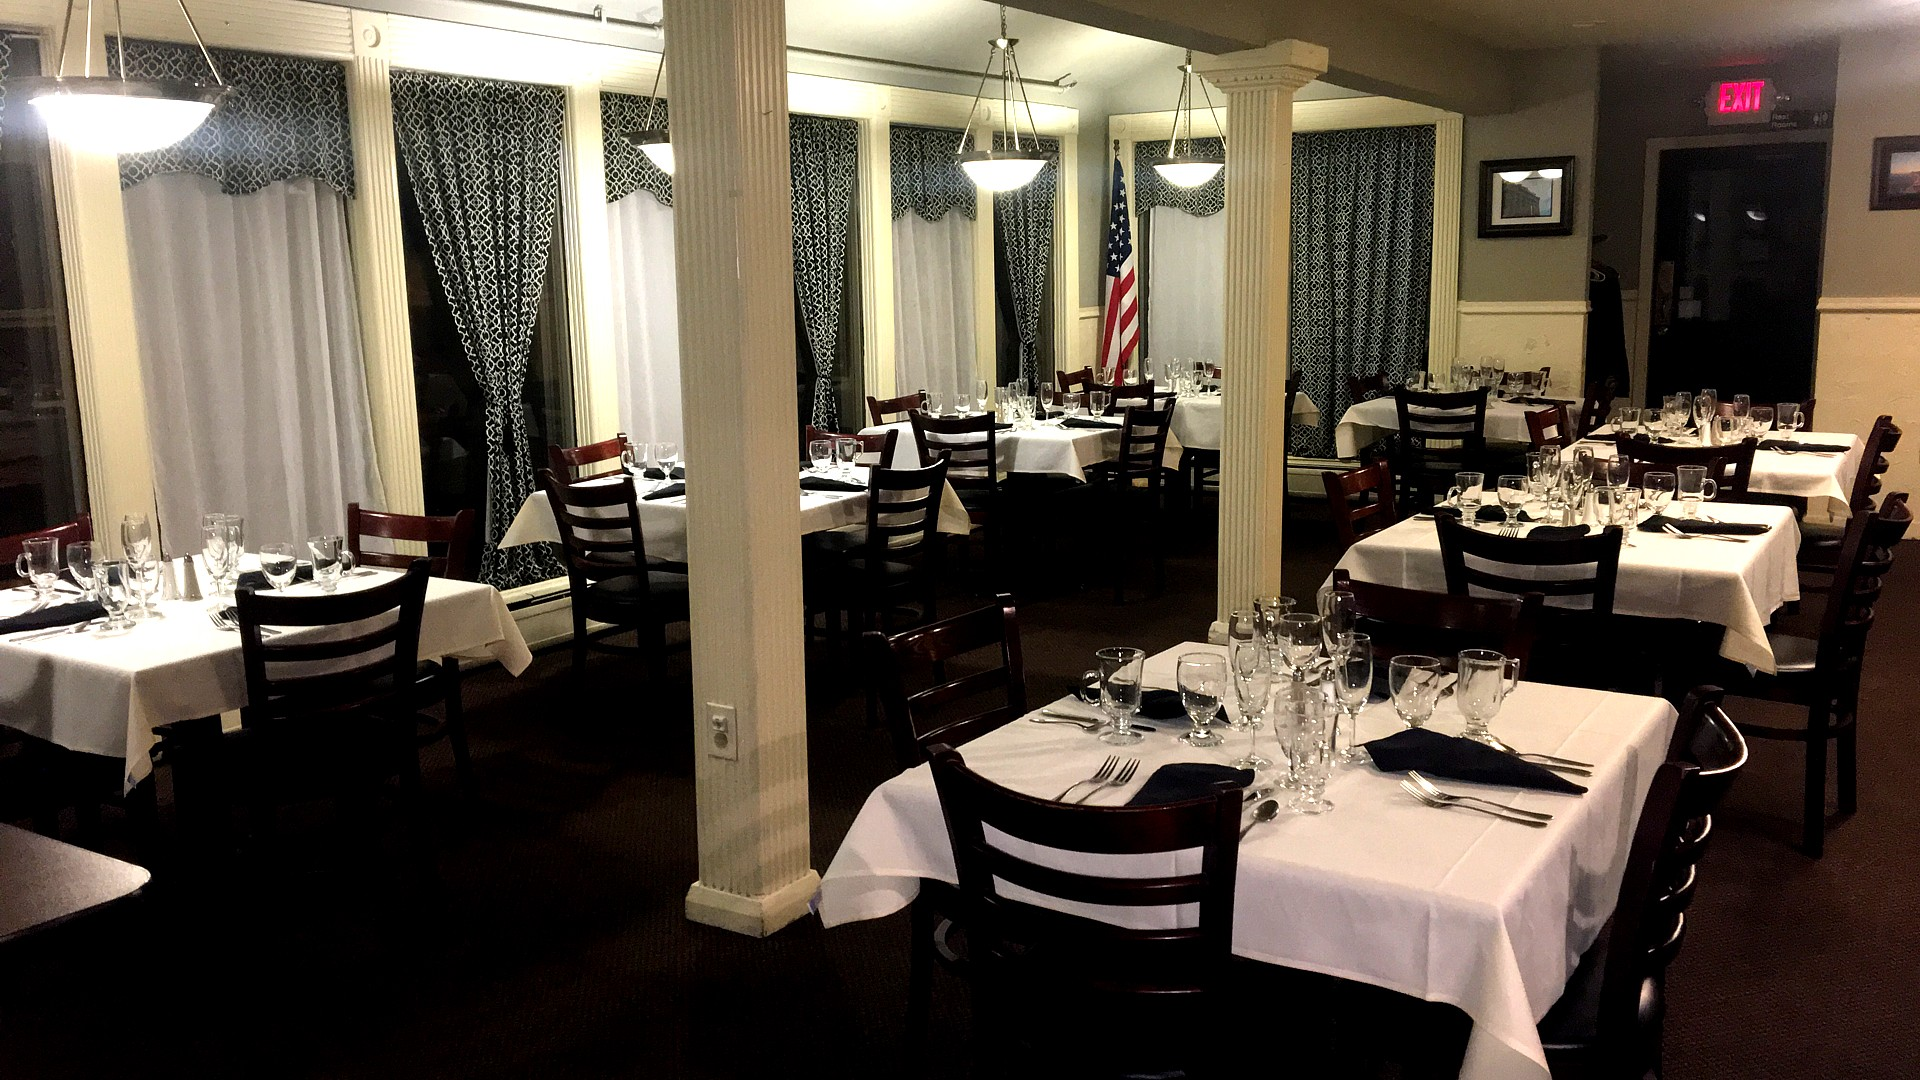 The Pub Restaurant Keene Nh Restaurants And Caterers